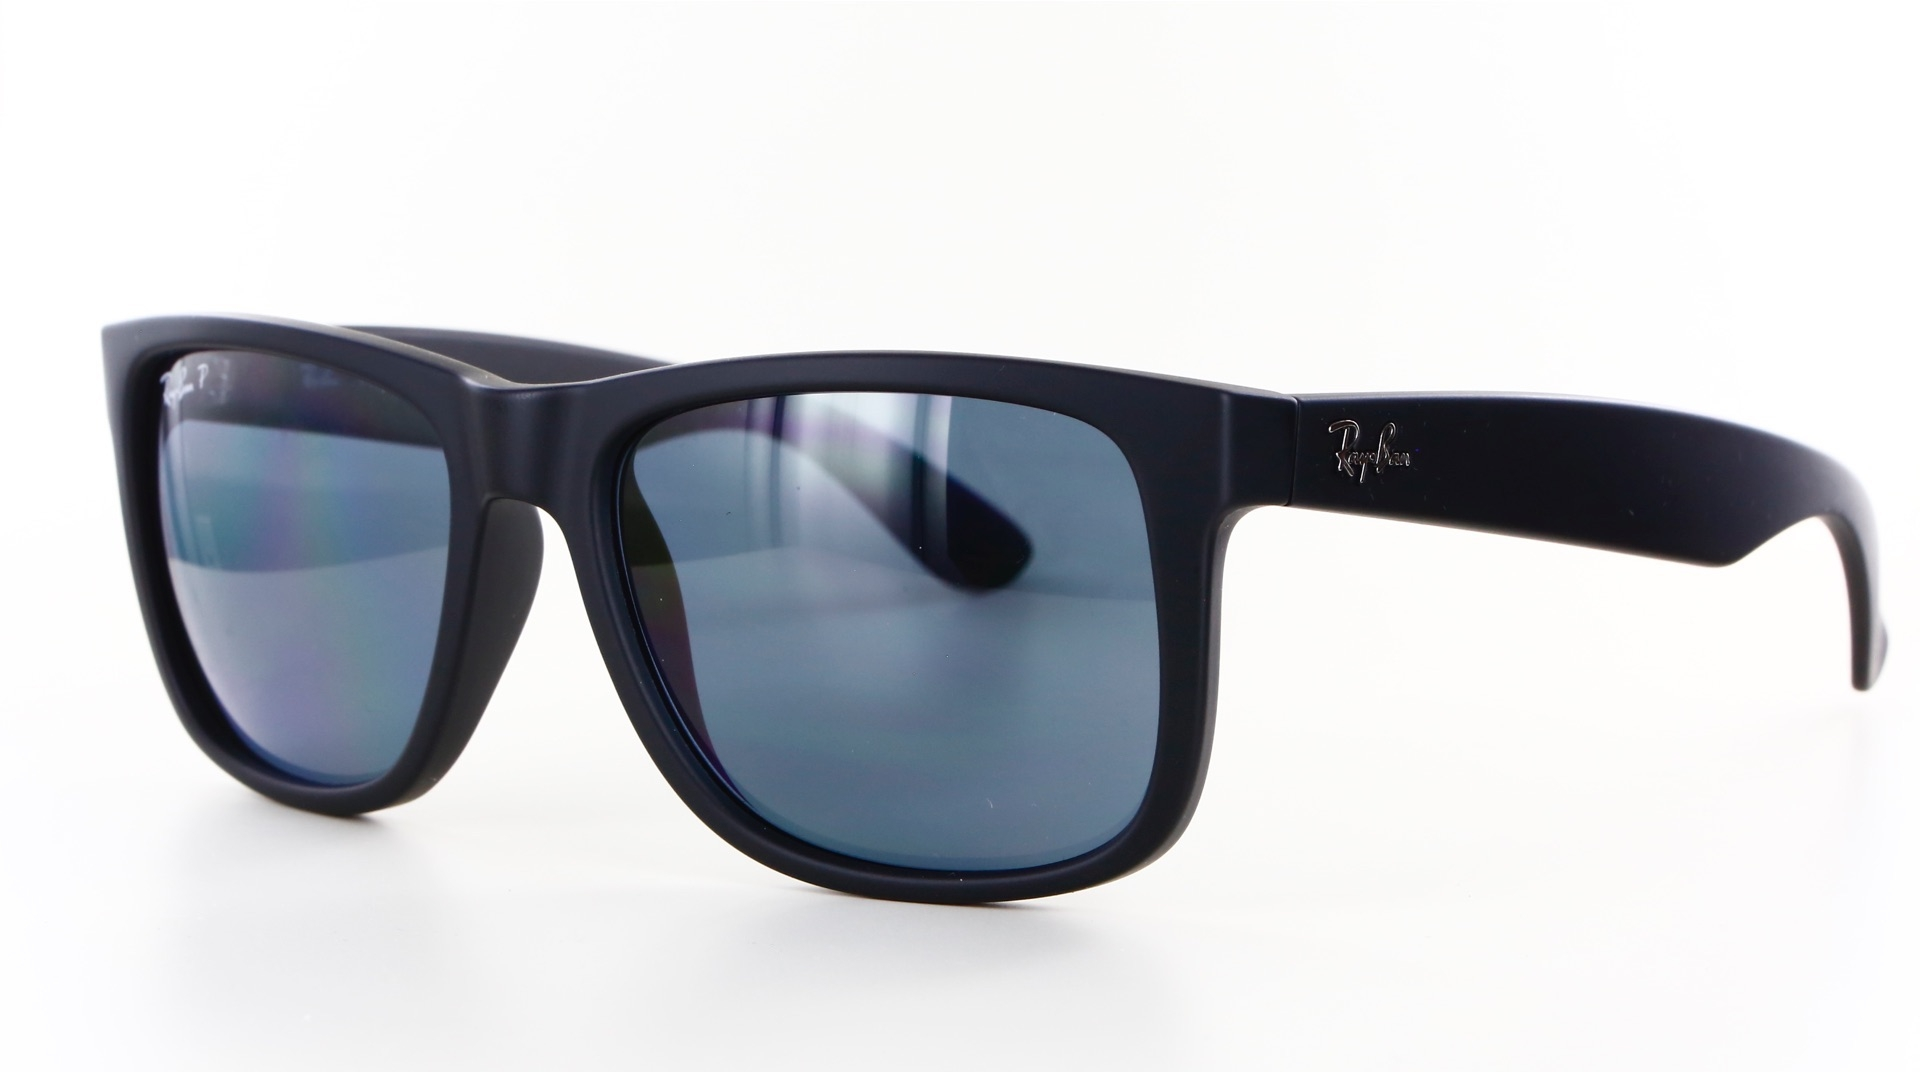 Ray-Ban - ref: 74758